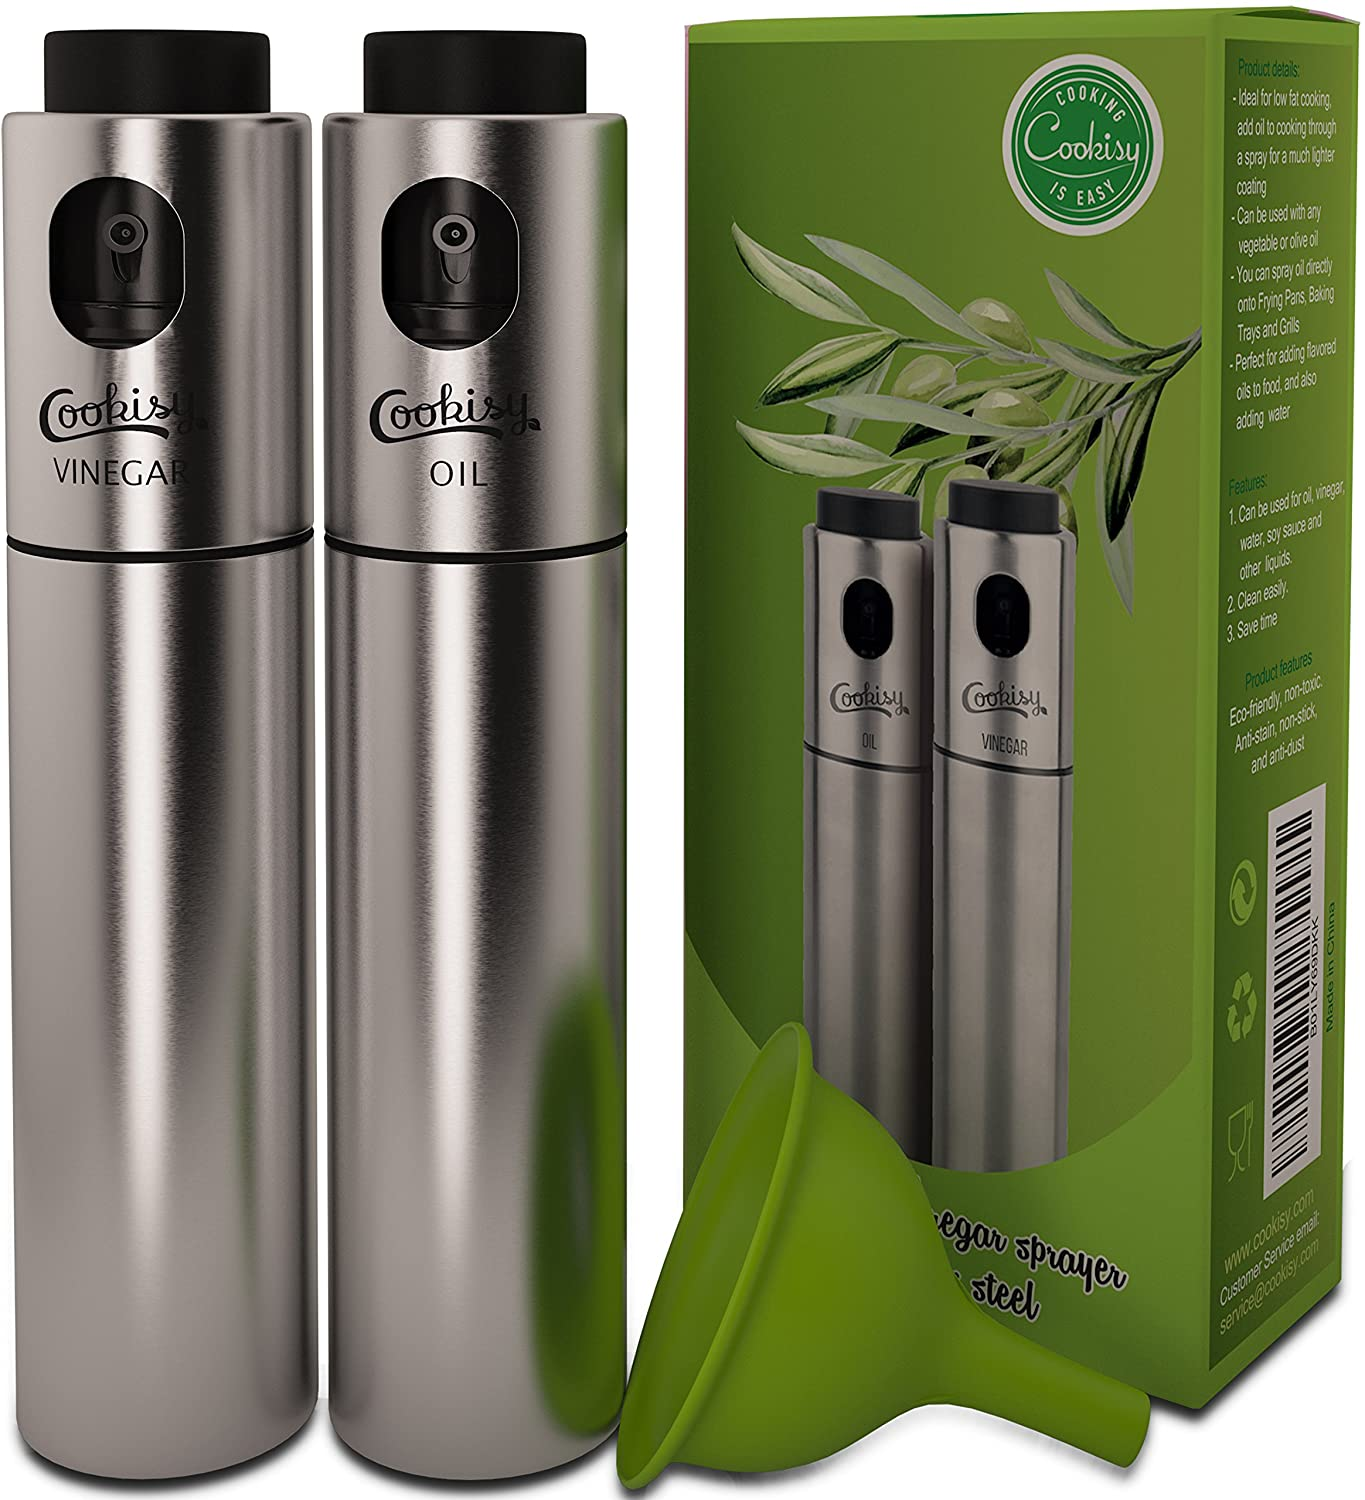 Cookisy olive oil and vinegar sprayer set